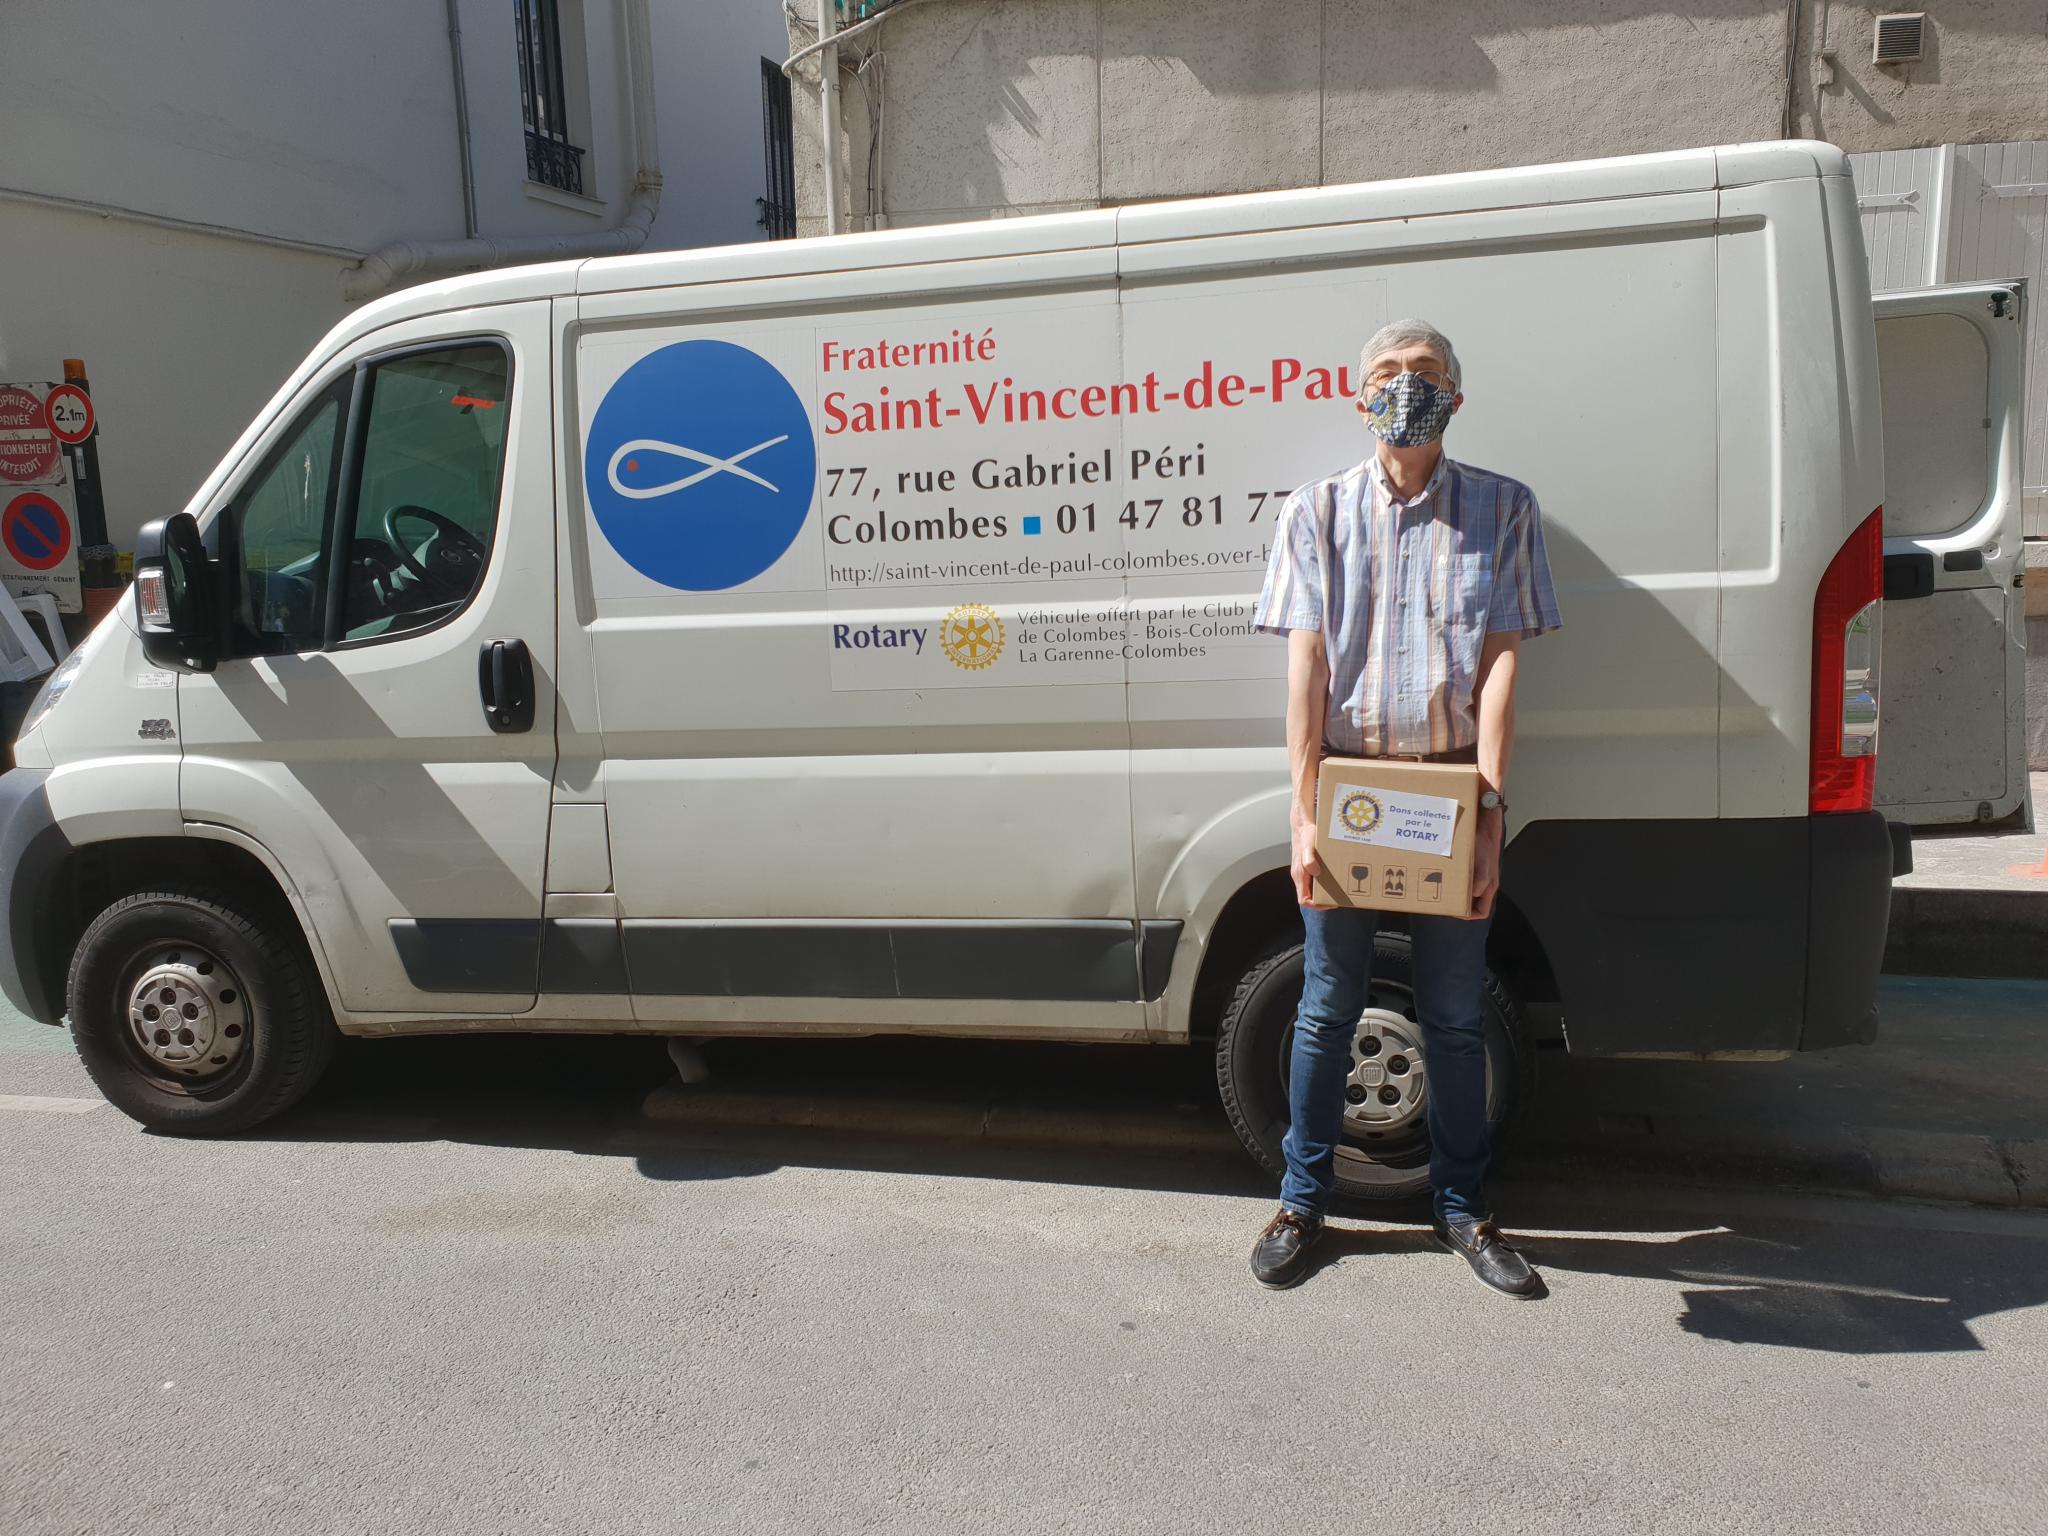 Photo camion epicerie solidaire